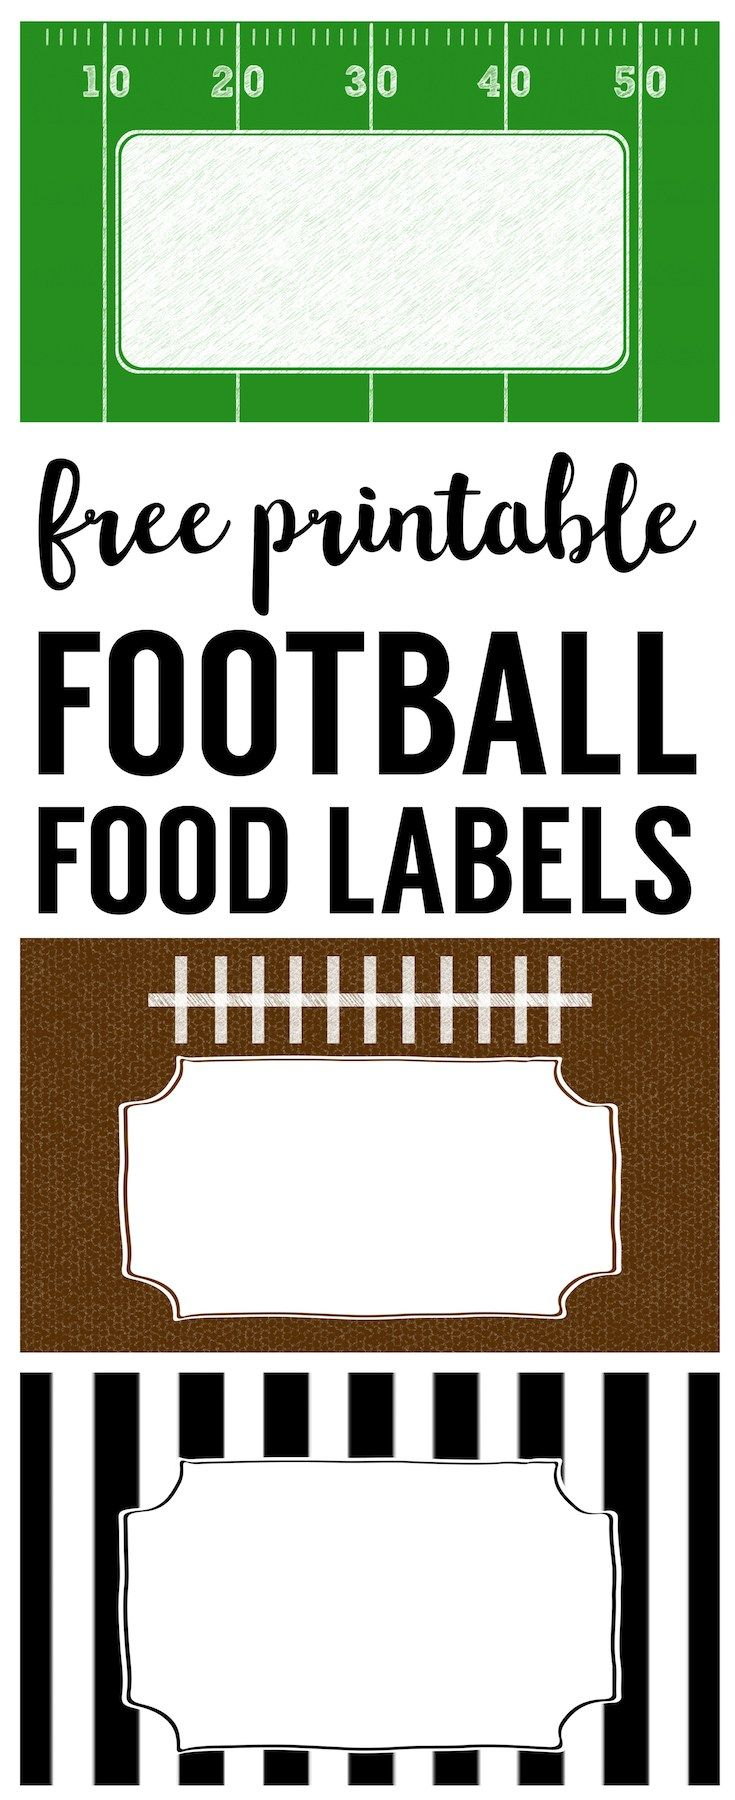 decor football ideas tag party birthday archives themed a life simple lists for decorations easy